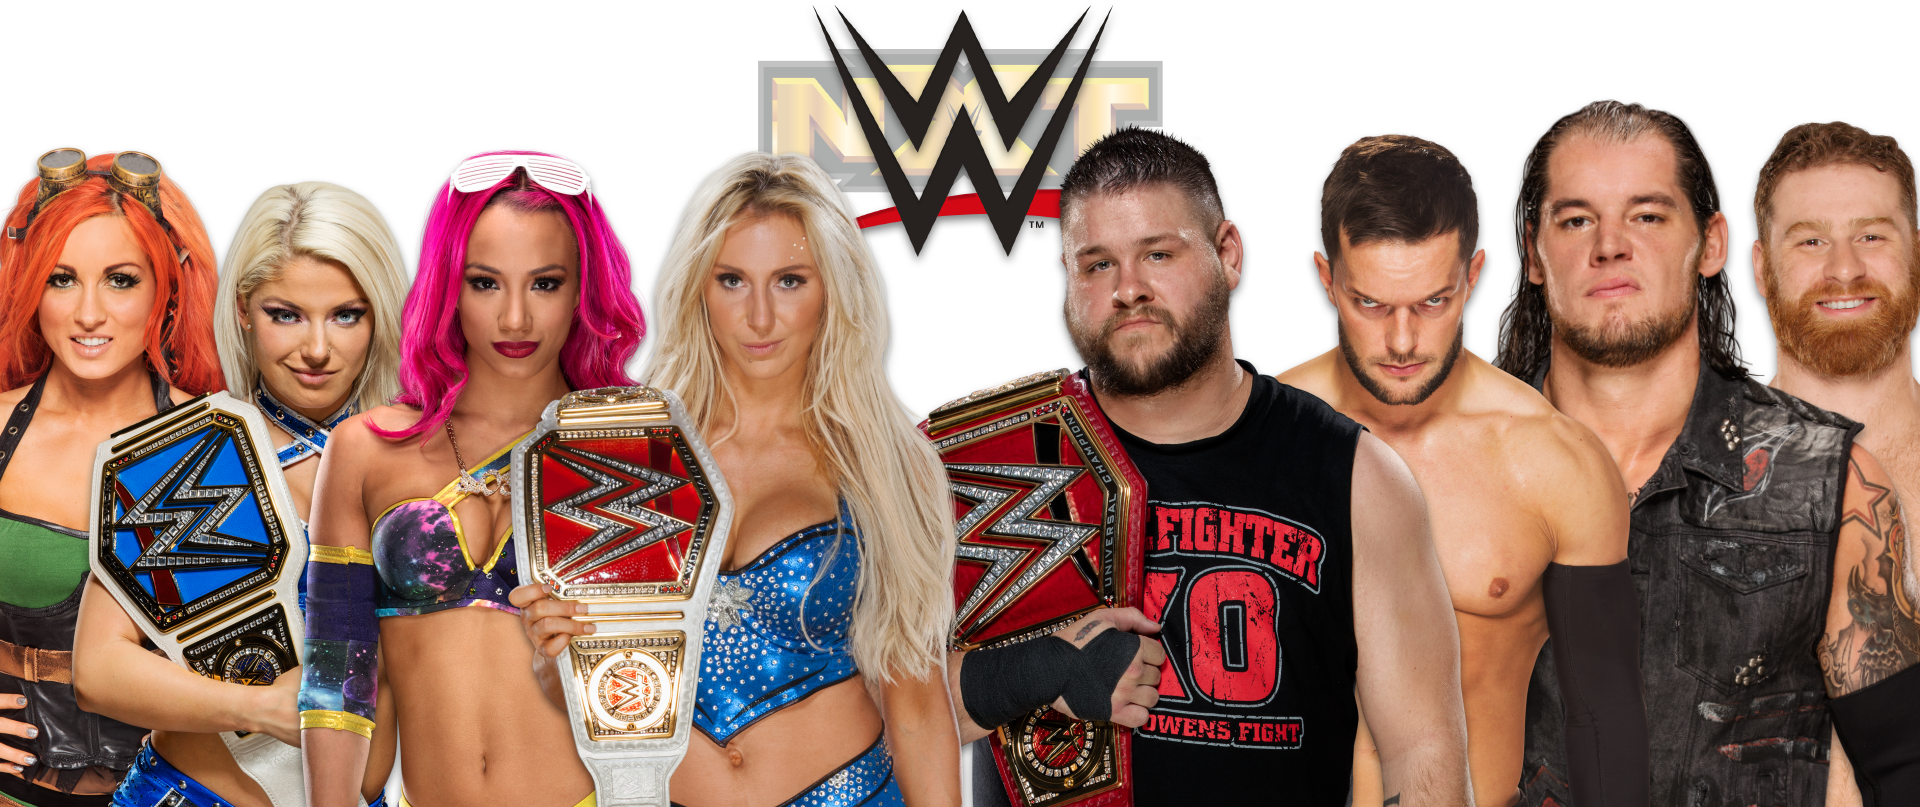 Credit: WWE; Edited by, The SPARX Team